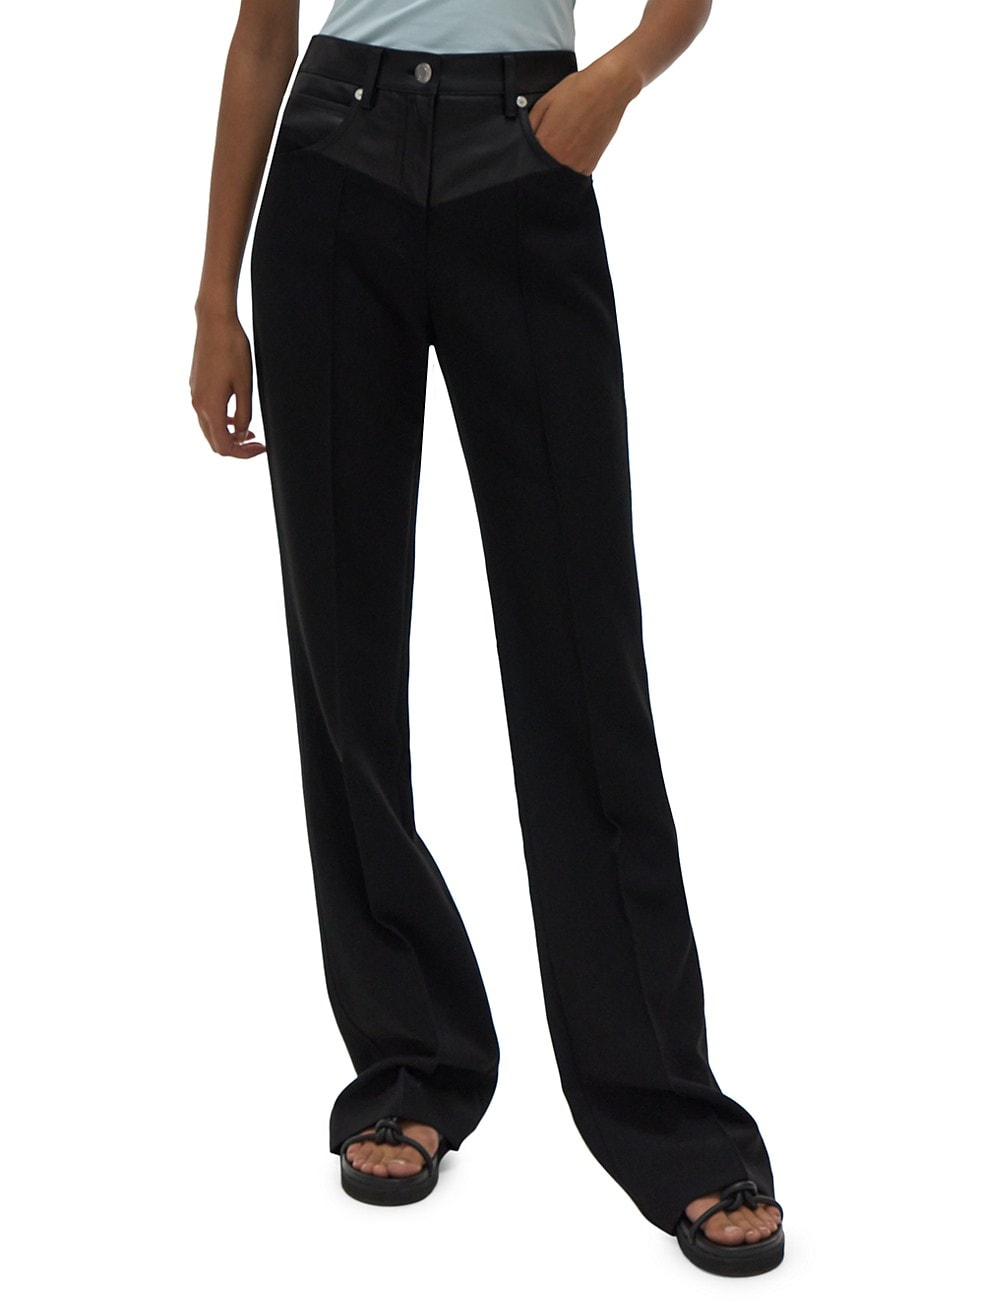 Garter Trousers by Helmut Lang, available on saksfifthavenue.com for $495 Kendall Jenner Pants Exact Product